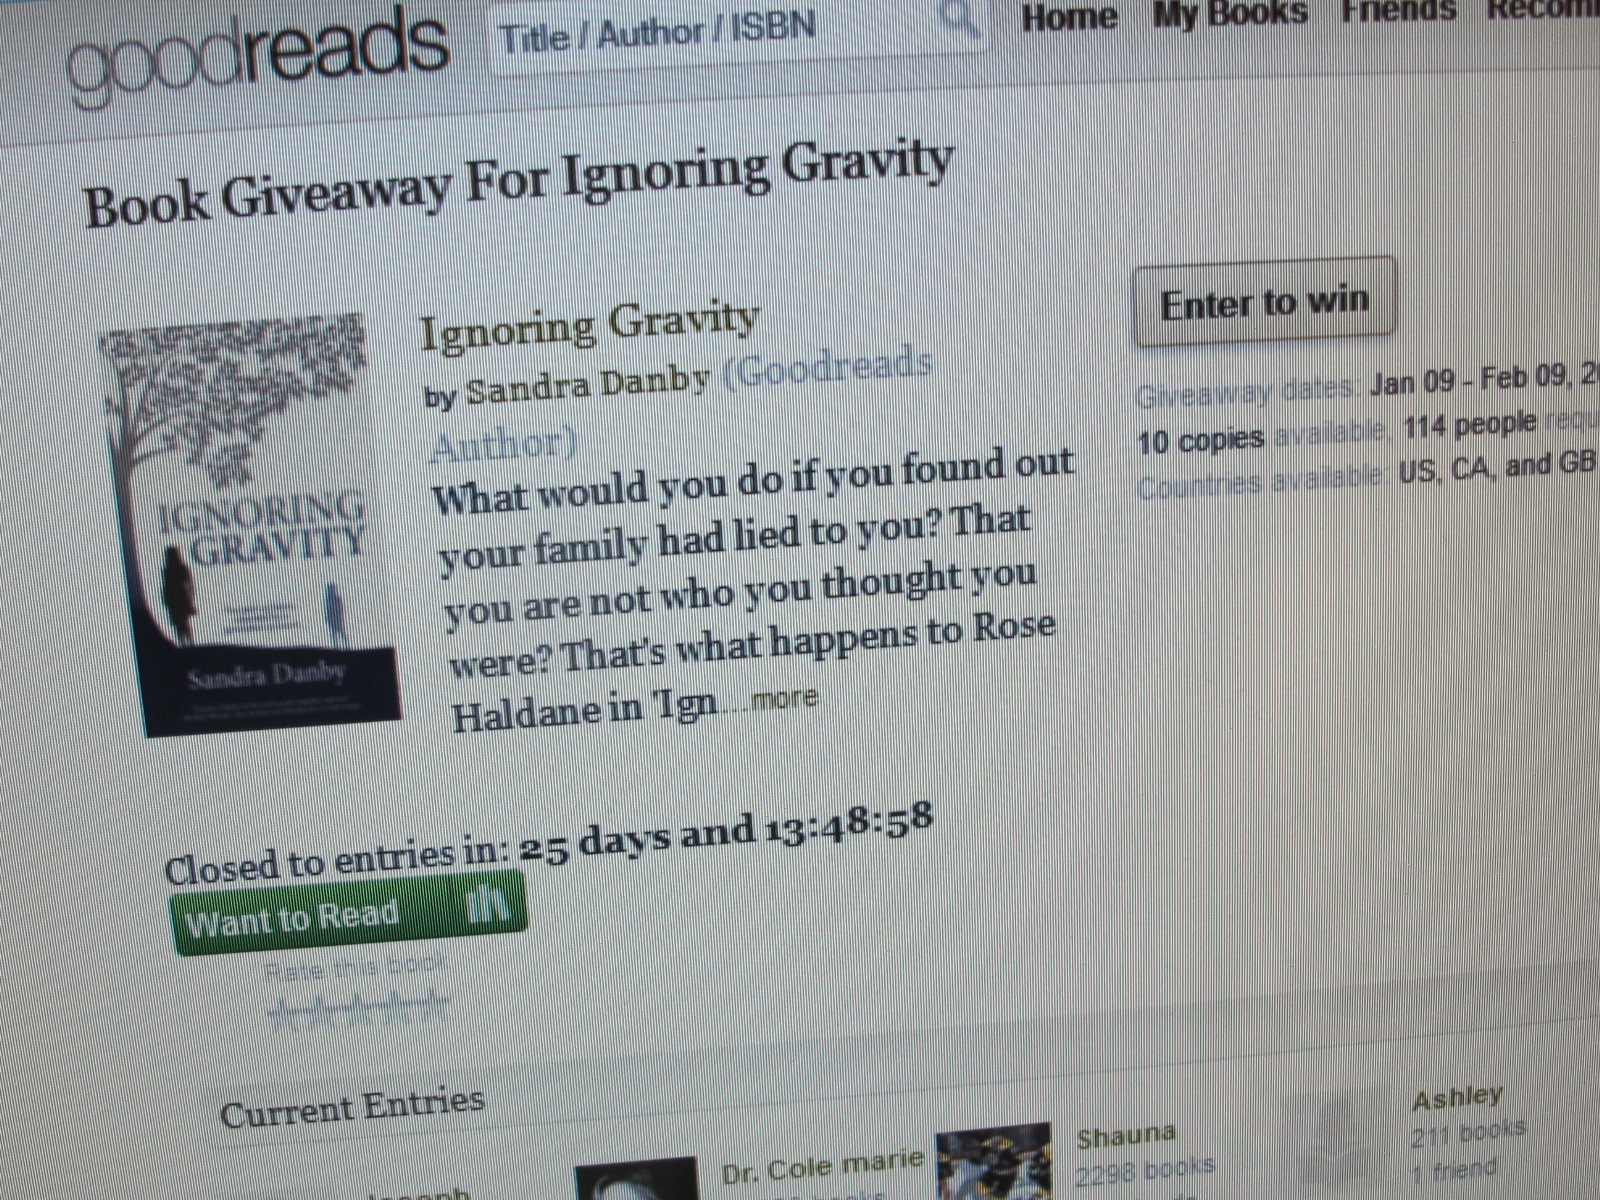 Can we read books on goodreads giveaways